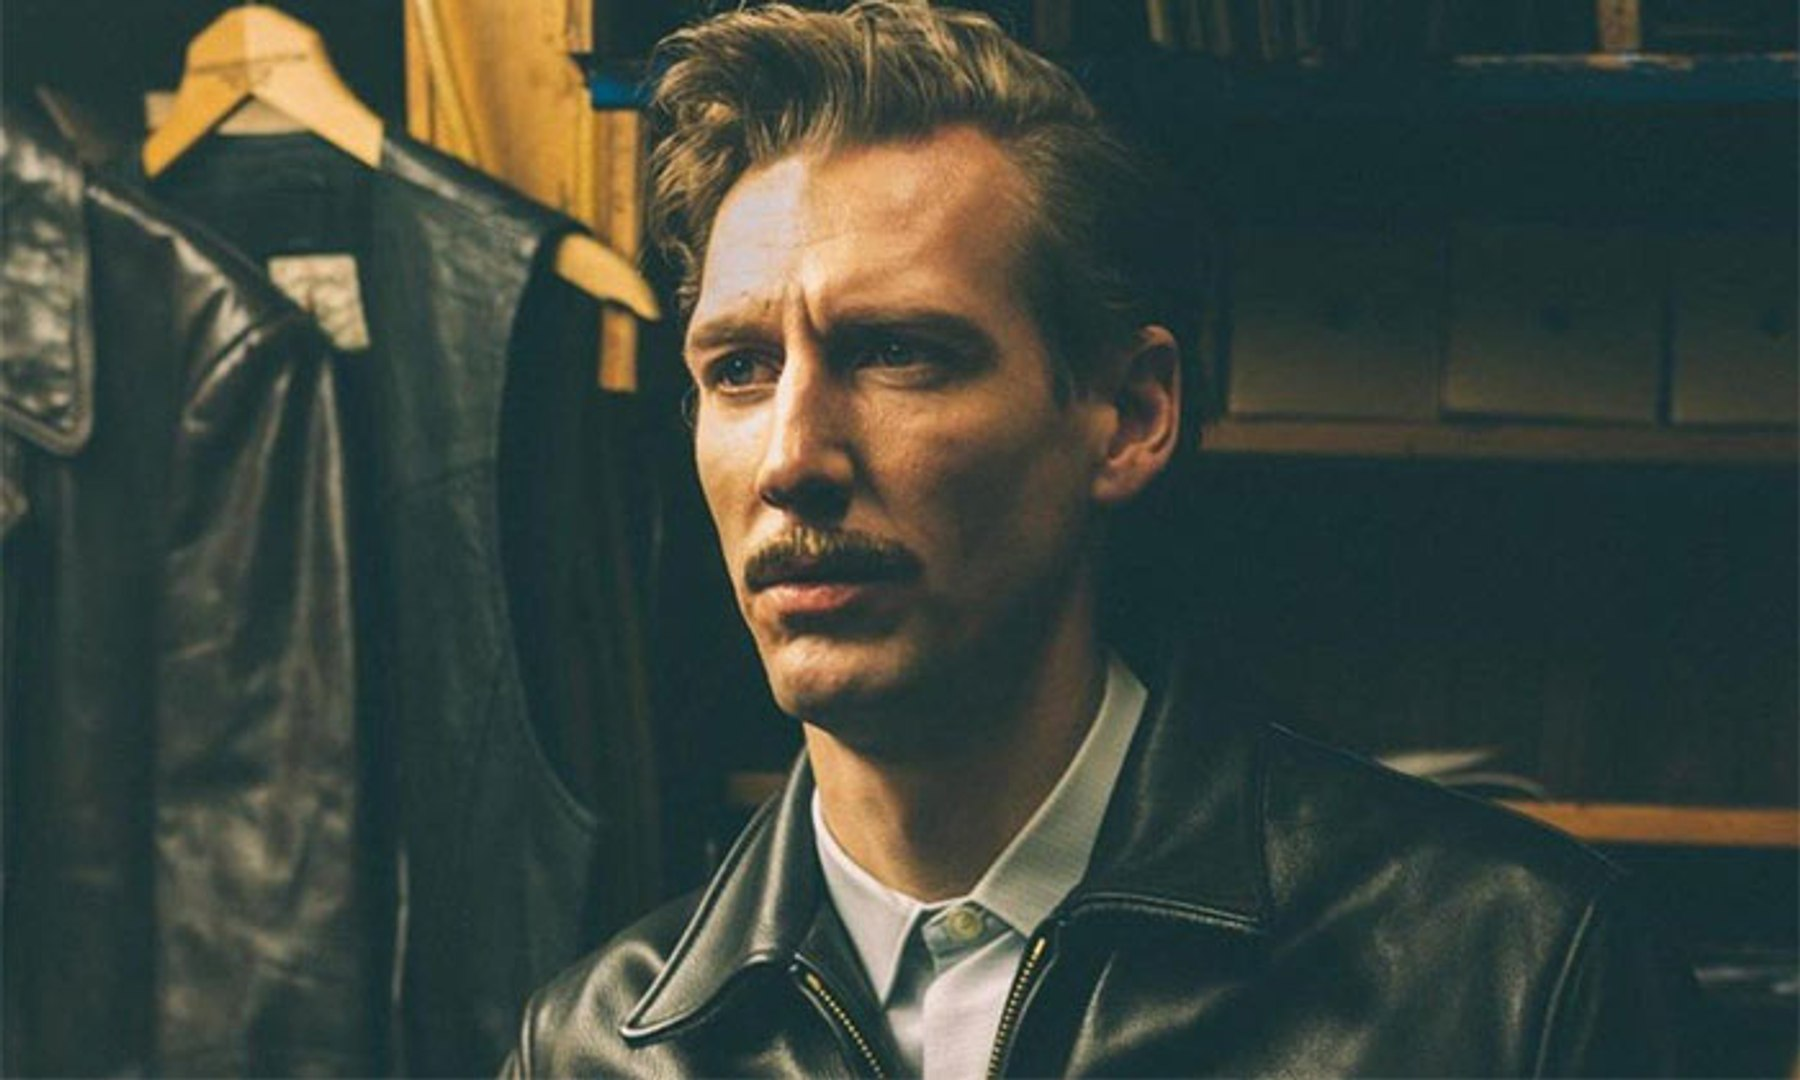 WATCH Tom of Finland FULL MOVIE (HD)